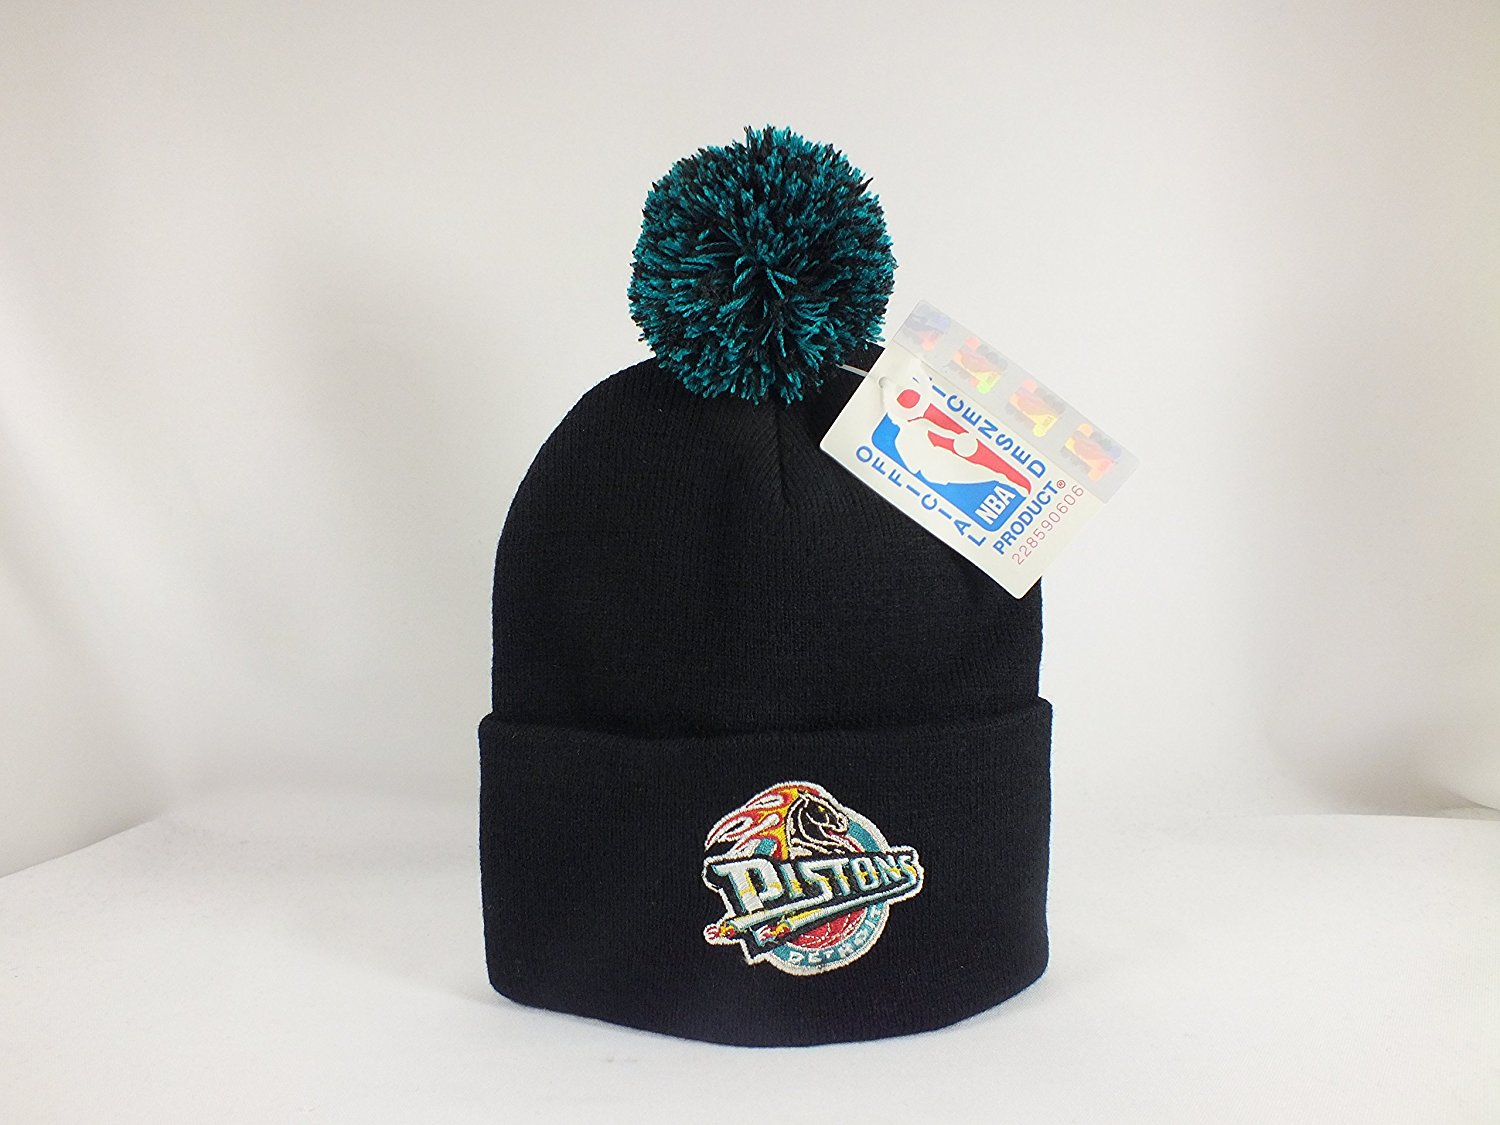 Get Quotations · DETROIT PISTONS NBA Black Winter Cap Beanie with Pom Pom  Top 4a6a8b40cda